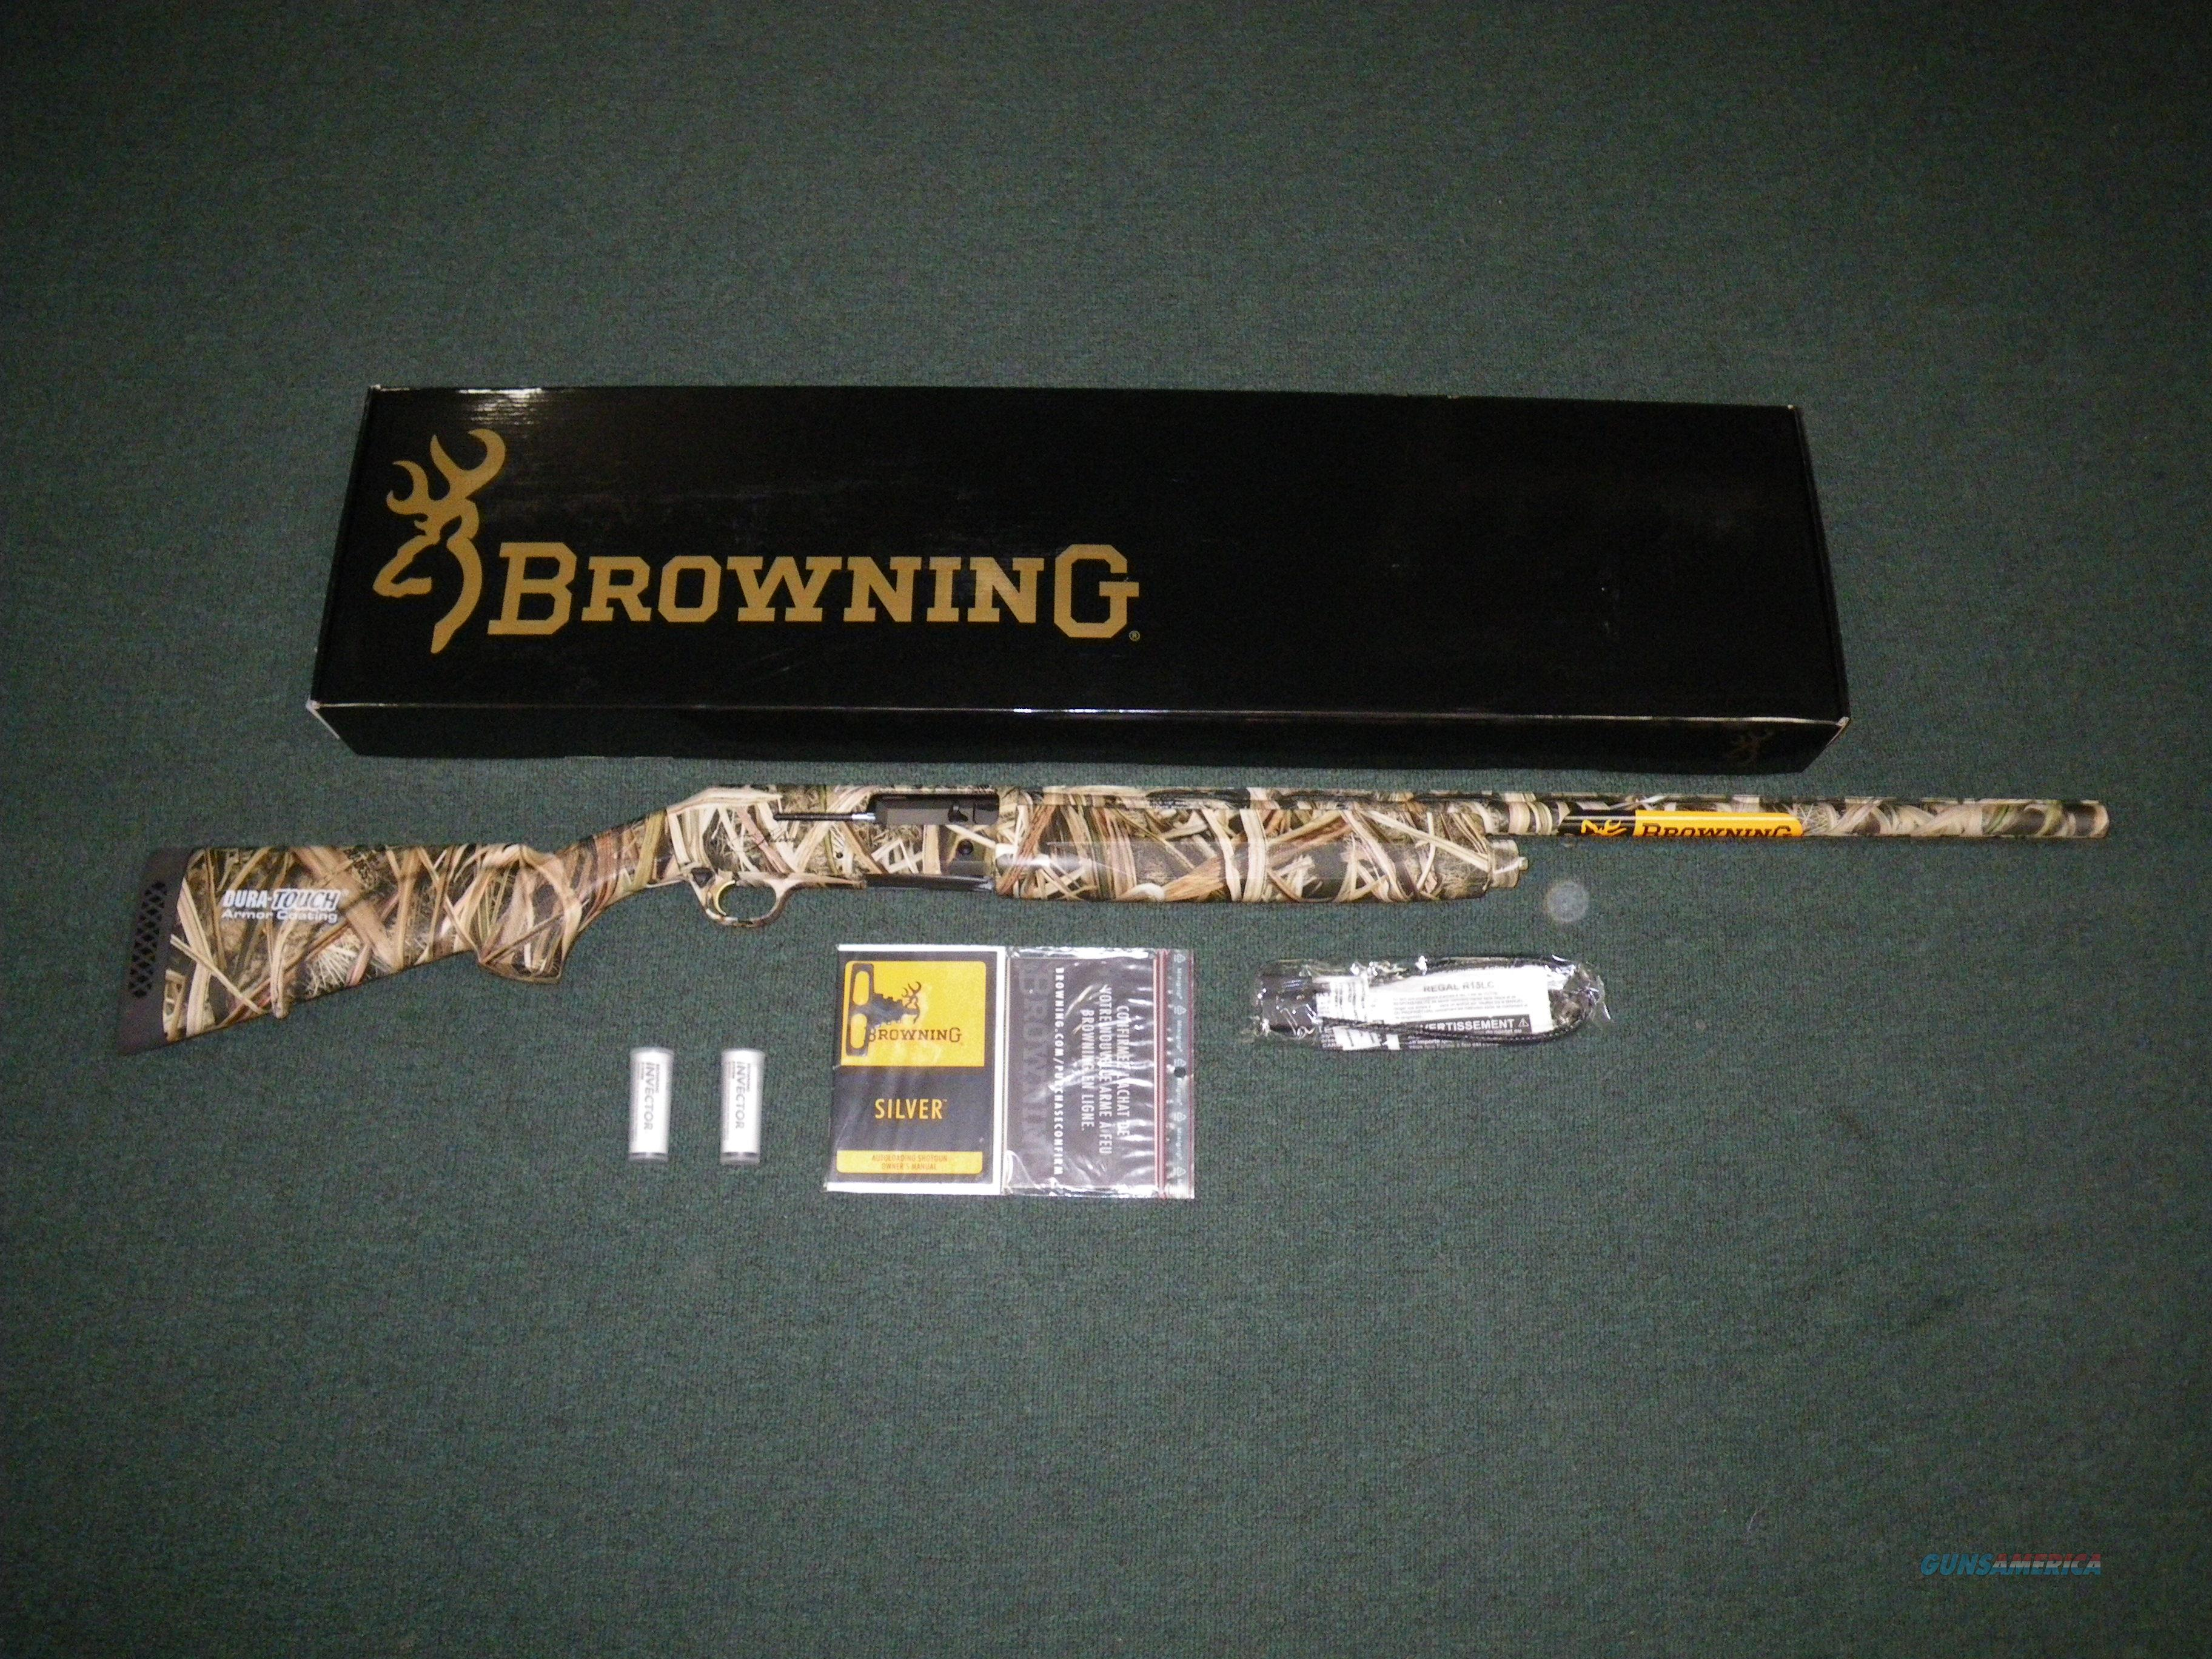 "Browning Silver 12ga 28"" Mossy Oak Shadow Grass NEW #011403204  Guns > Shotguns > Browning Shotguns > Autoloaders > Hunting"